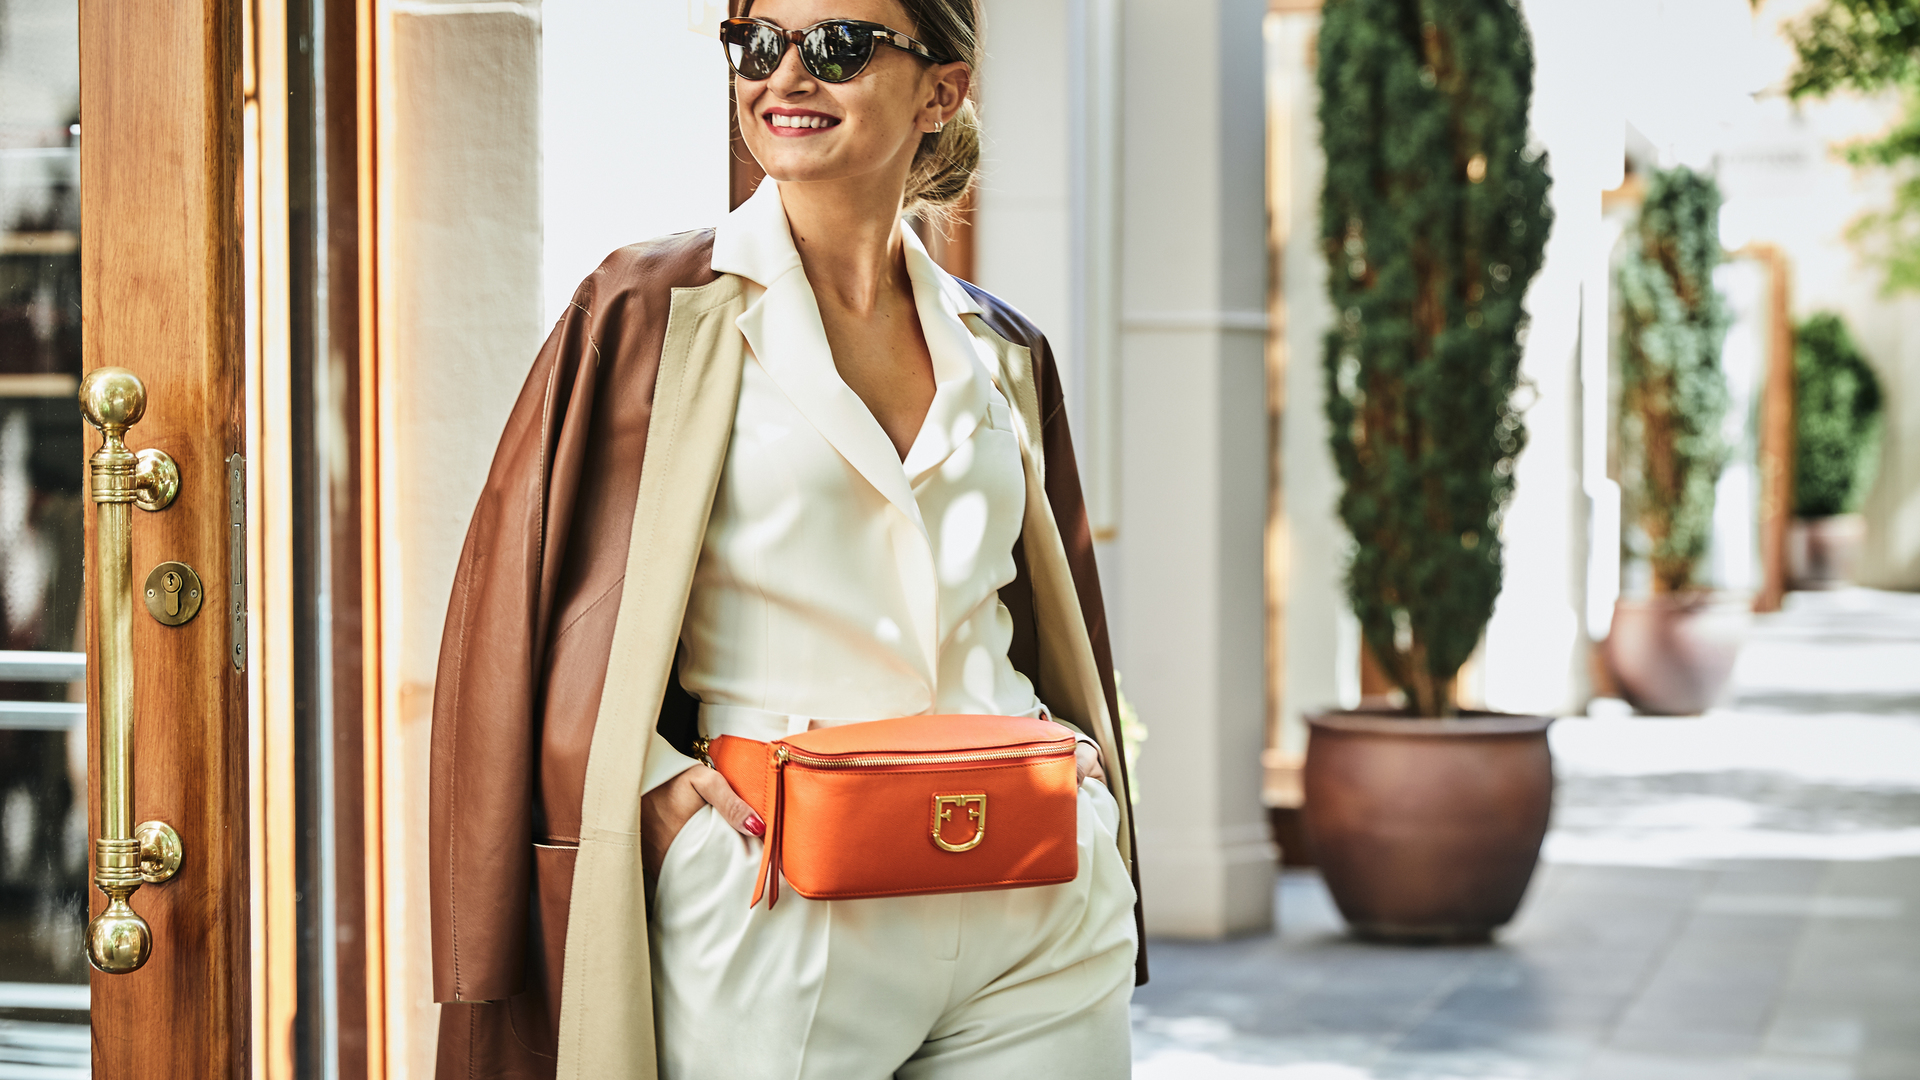 Smiling girl with orange fanny pack